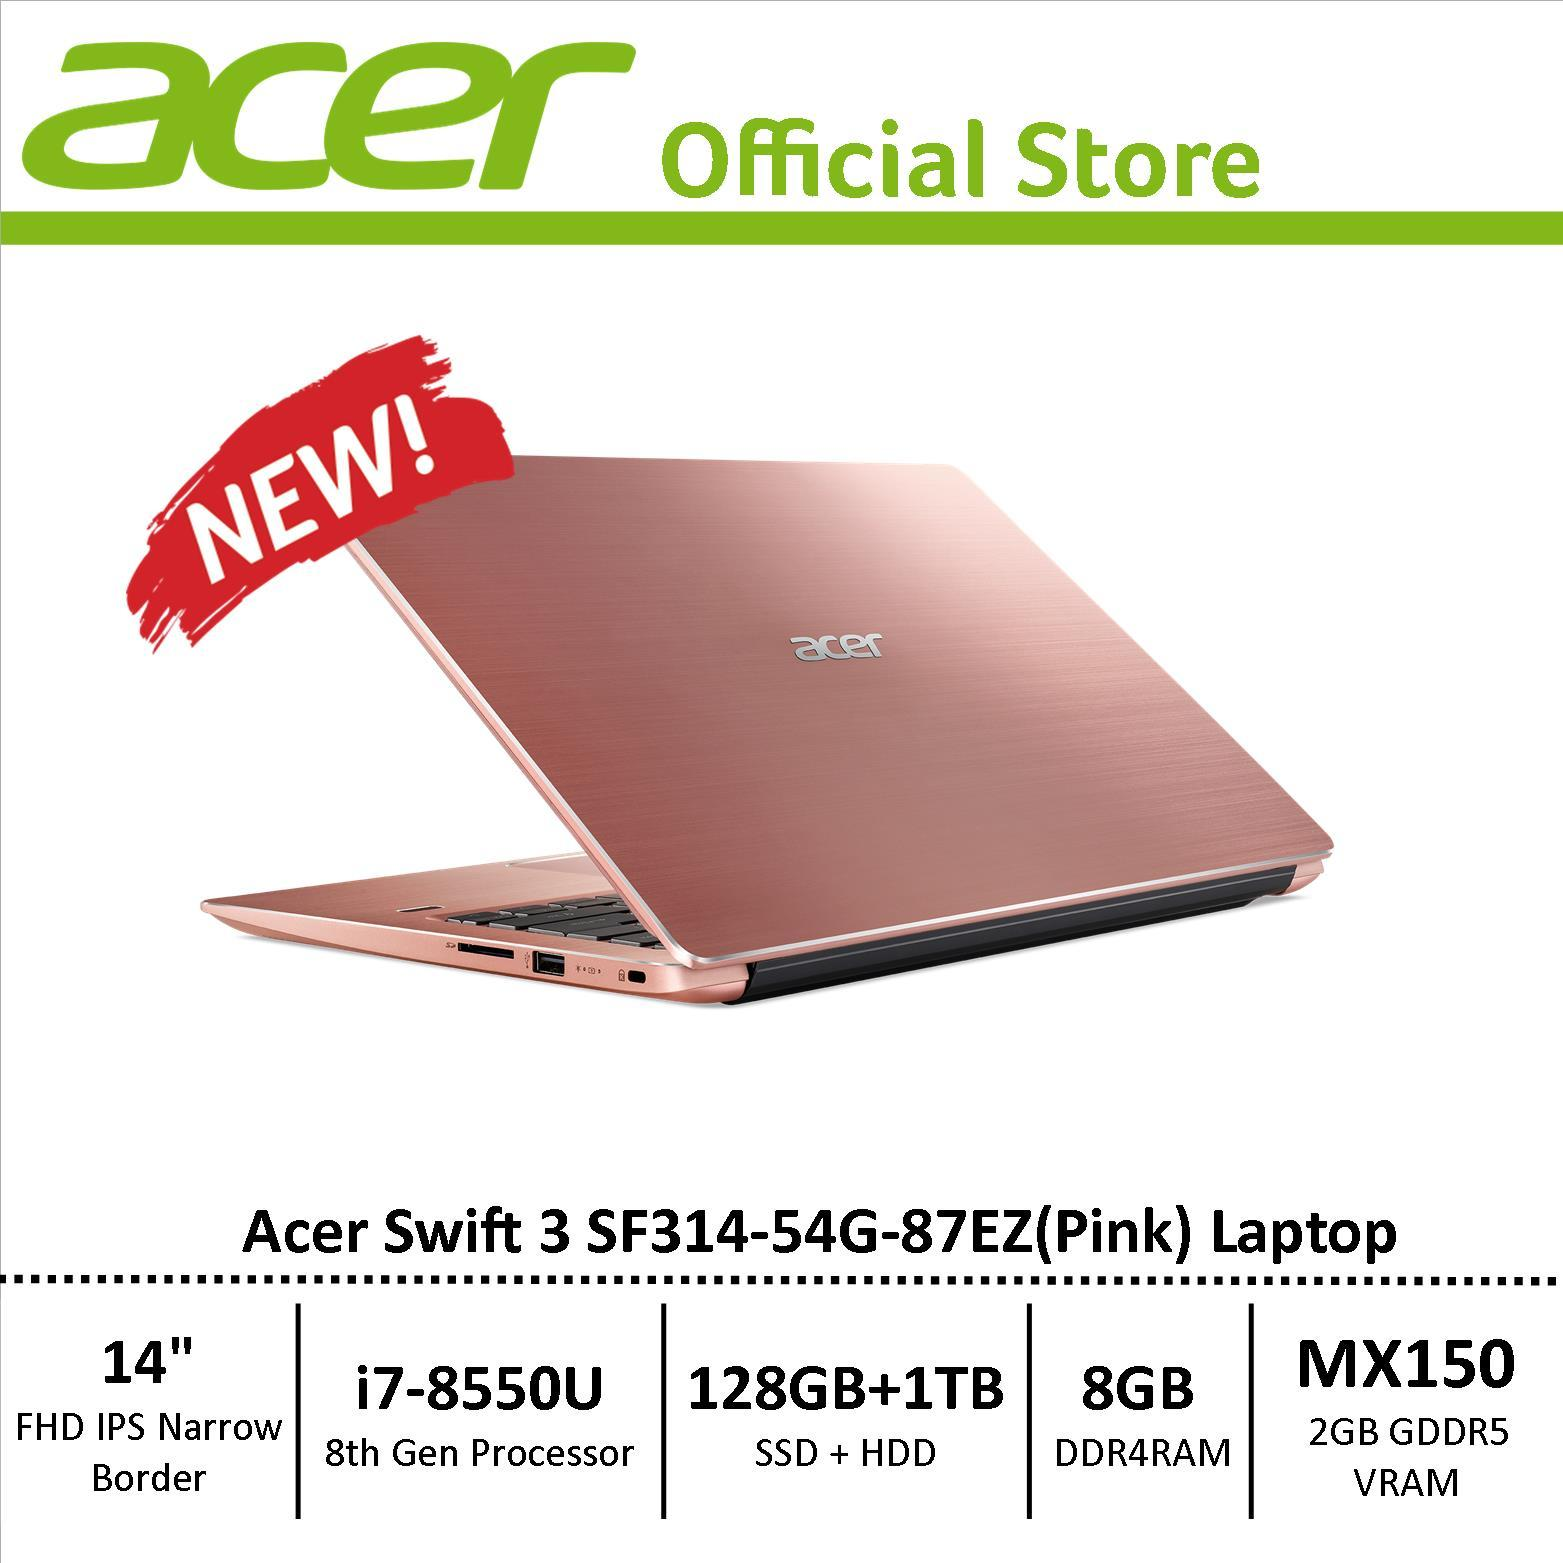 Buy Sell Cheapest Acer Aspire I7 Best Quality Product Deals Predator G6 710 6700k Gtx 980 4gb 16gb Ddr4 1tb Win10 Black Swift 3 Sf314 54g Thin And Light Narrow Border Design Laptop 8th Generation